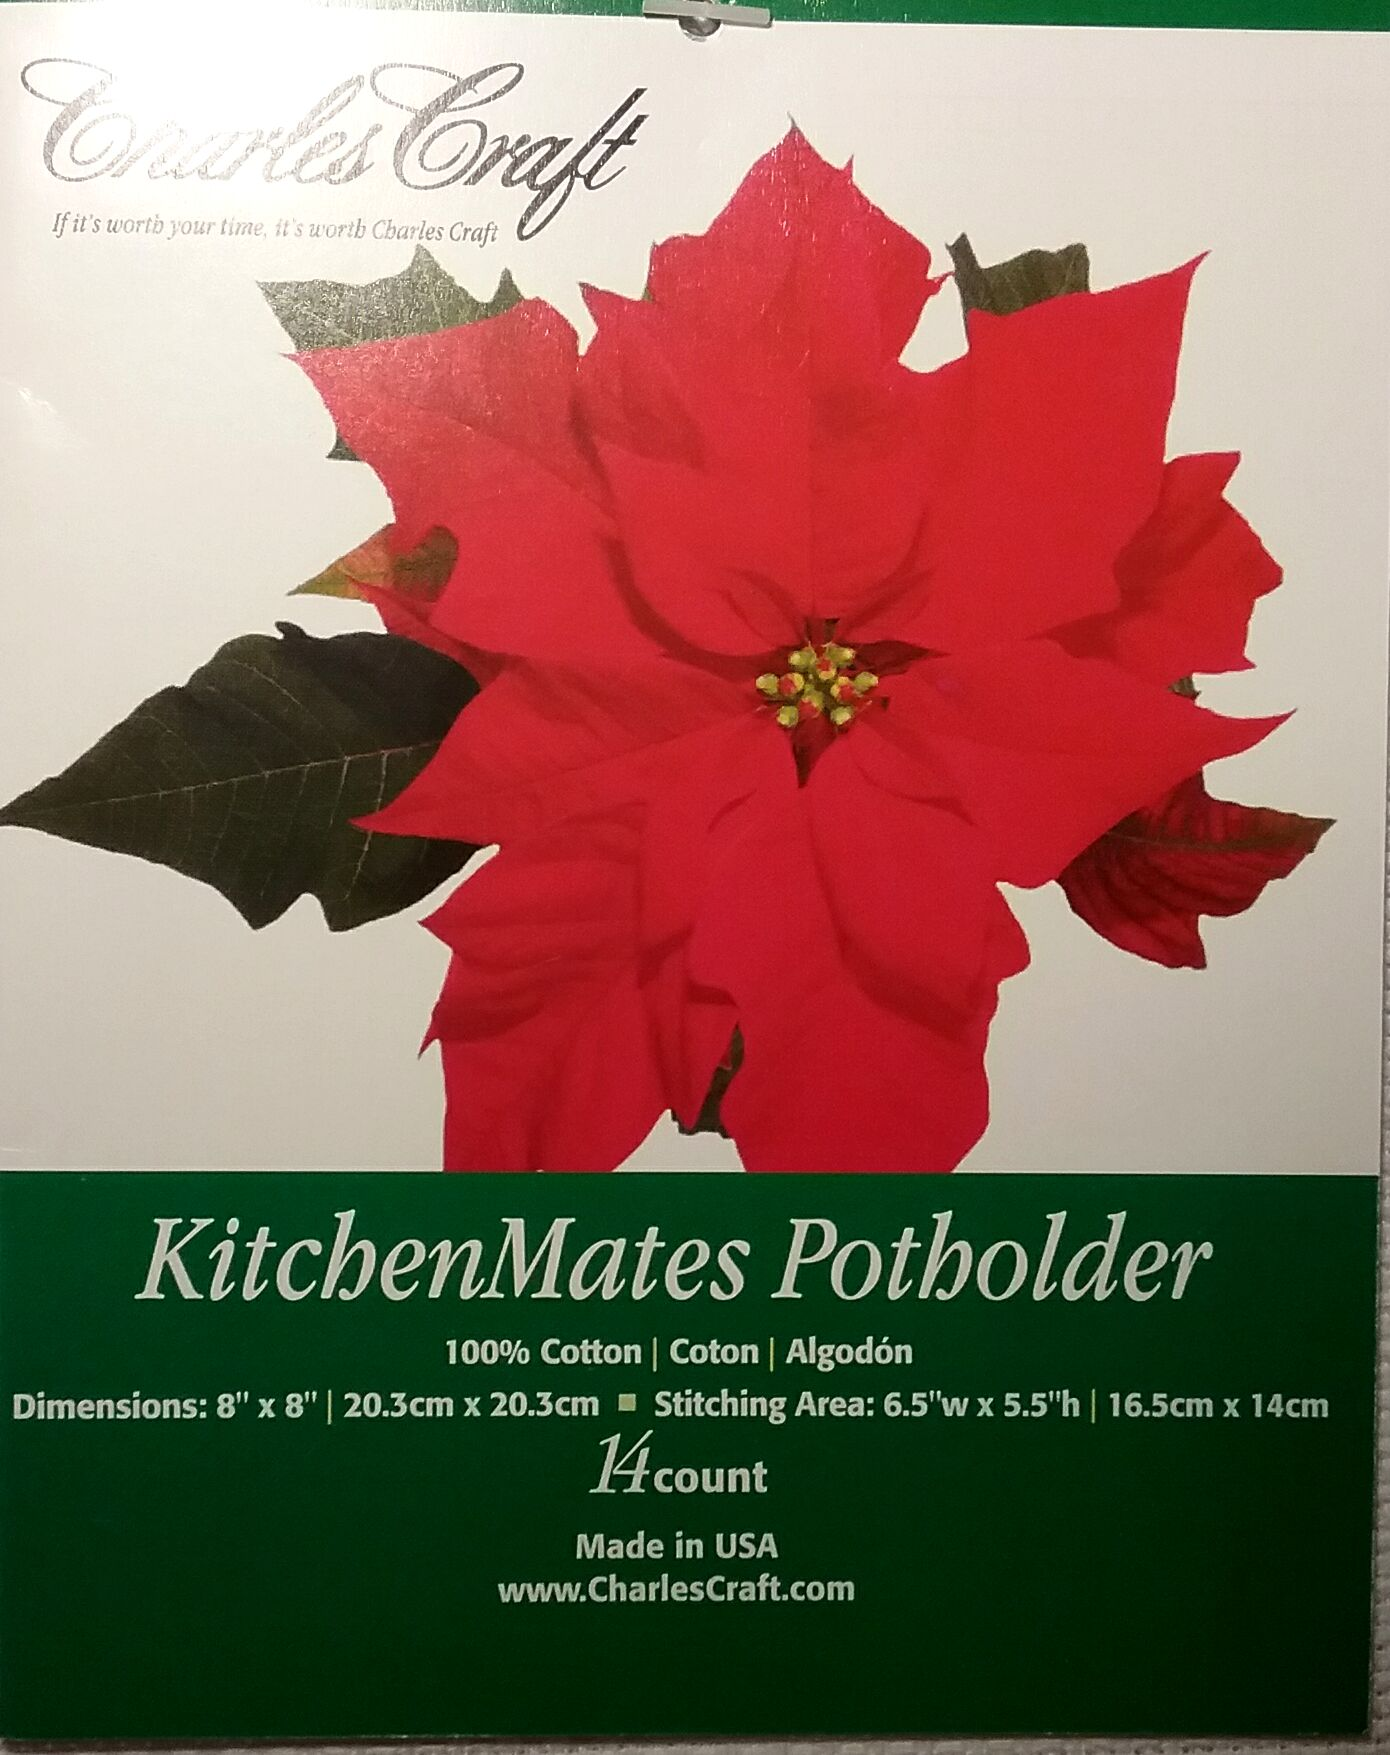 Dimensions 8706 KitchenMates Pot Holder